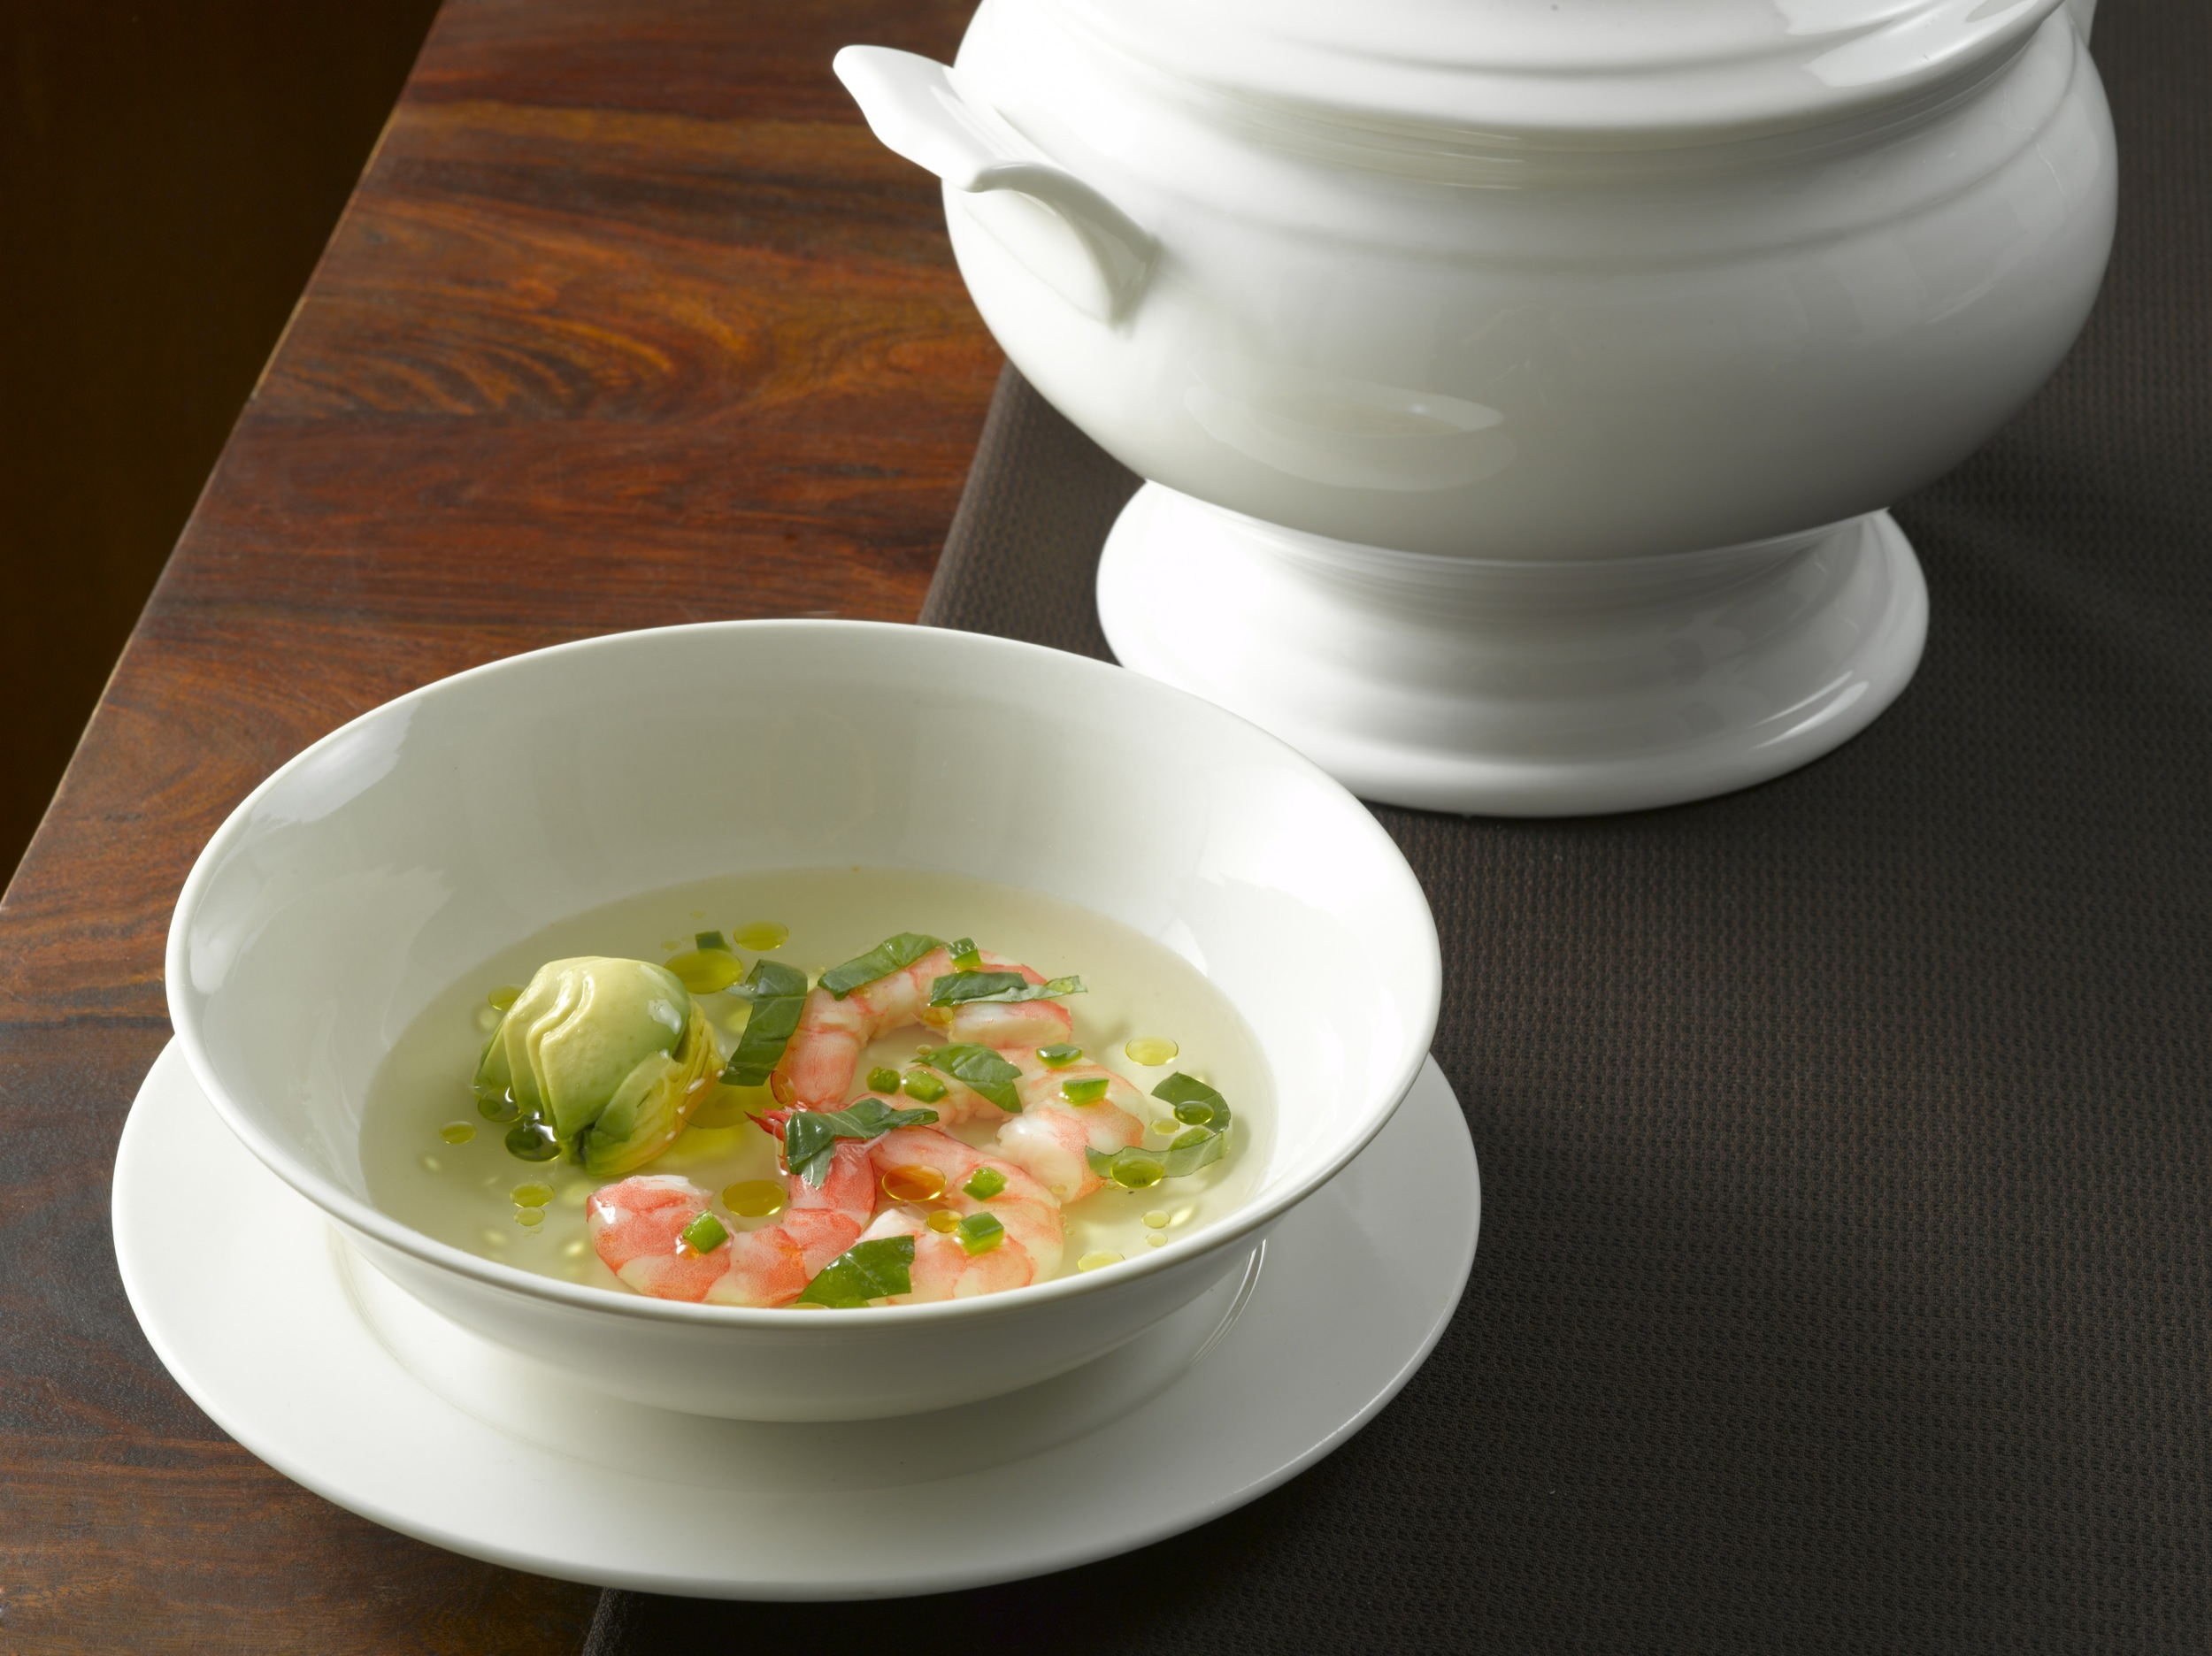 Tomato Consomméwith Basil and Lemongrass  : A light-bodied and pure blend of simple flavors, at once sweet and acidic.